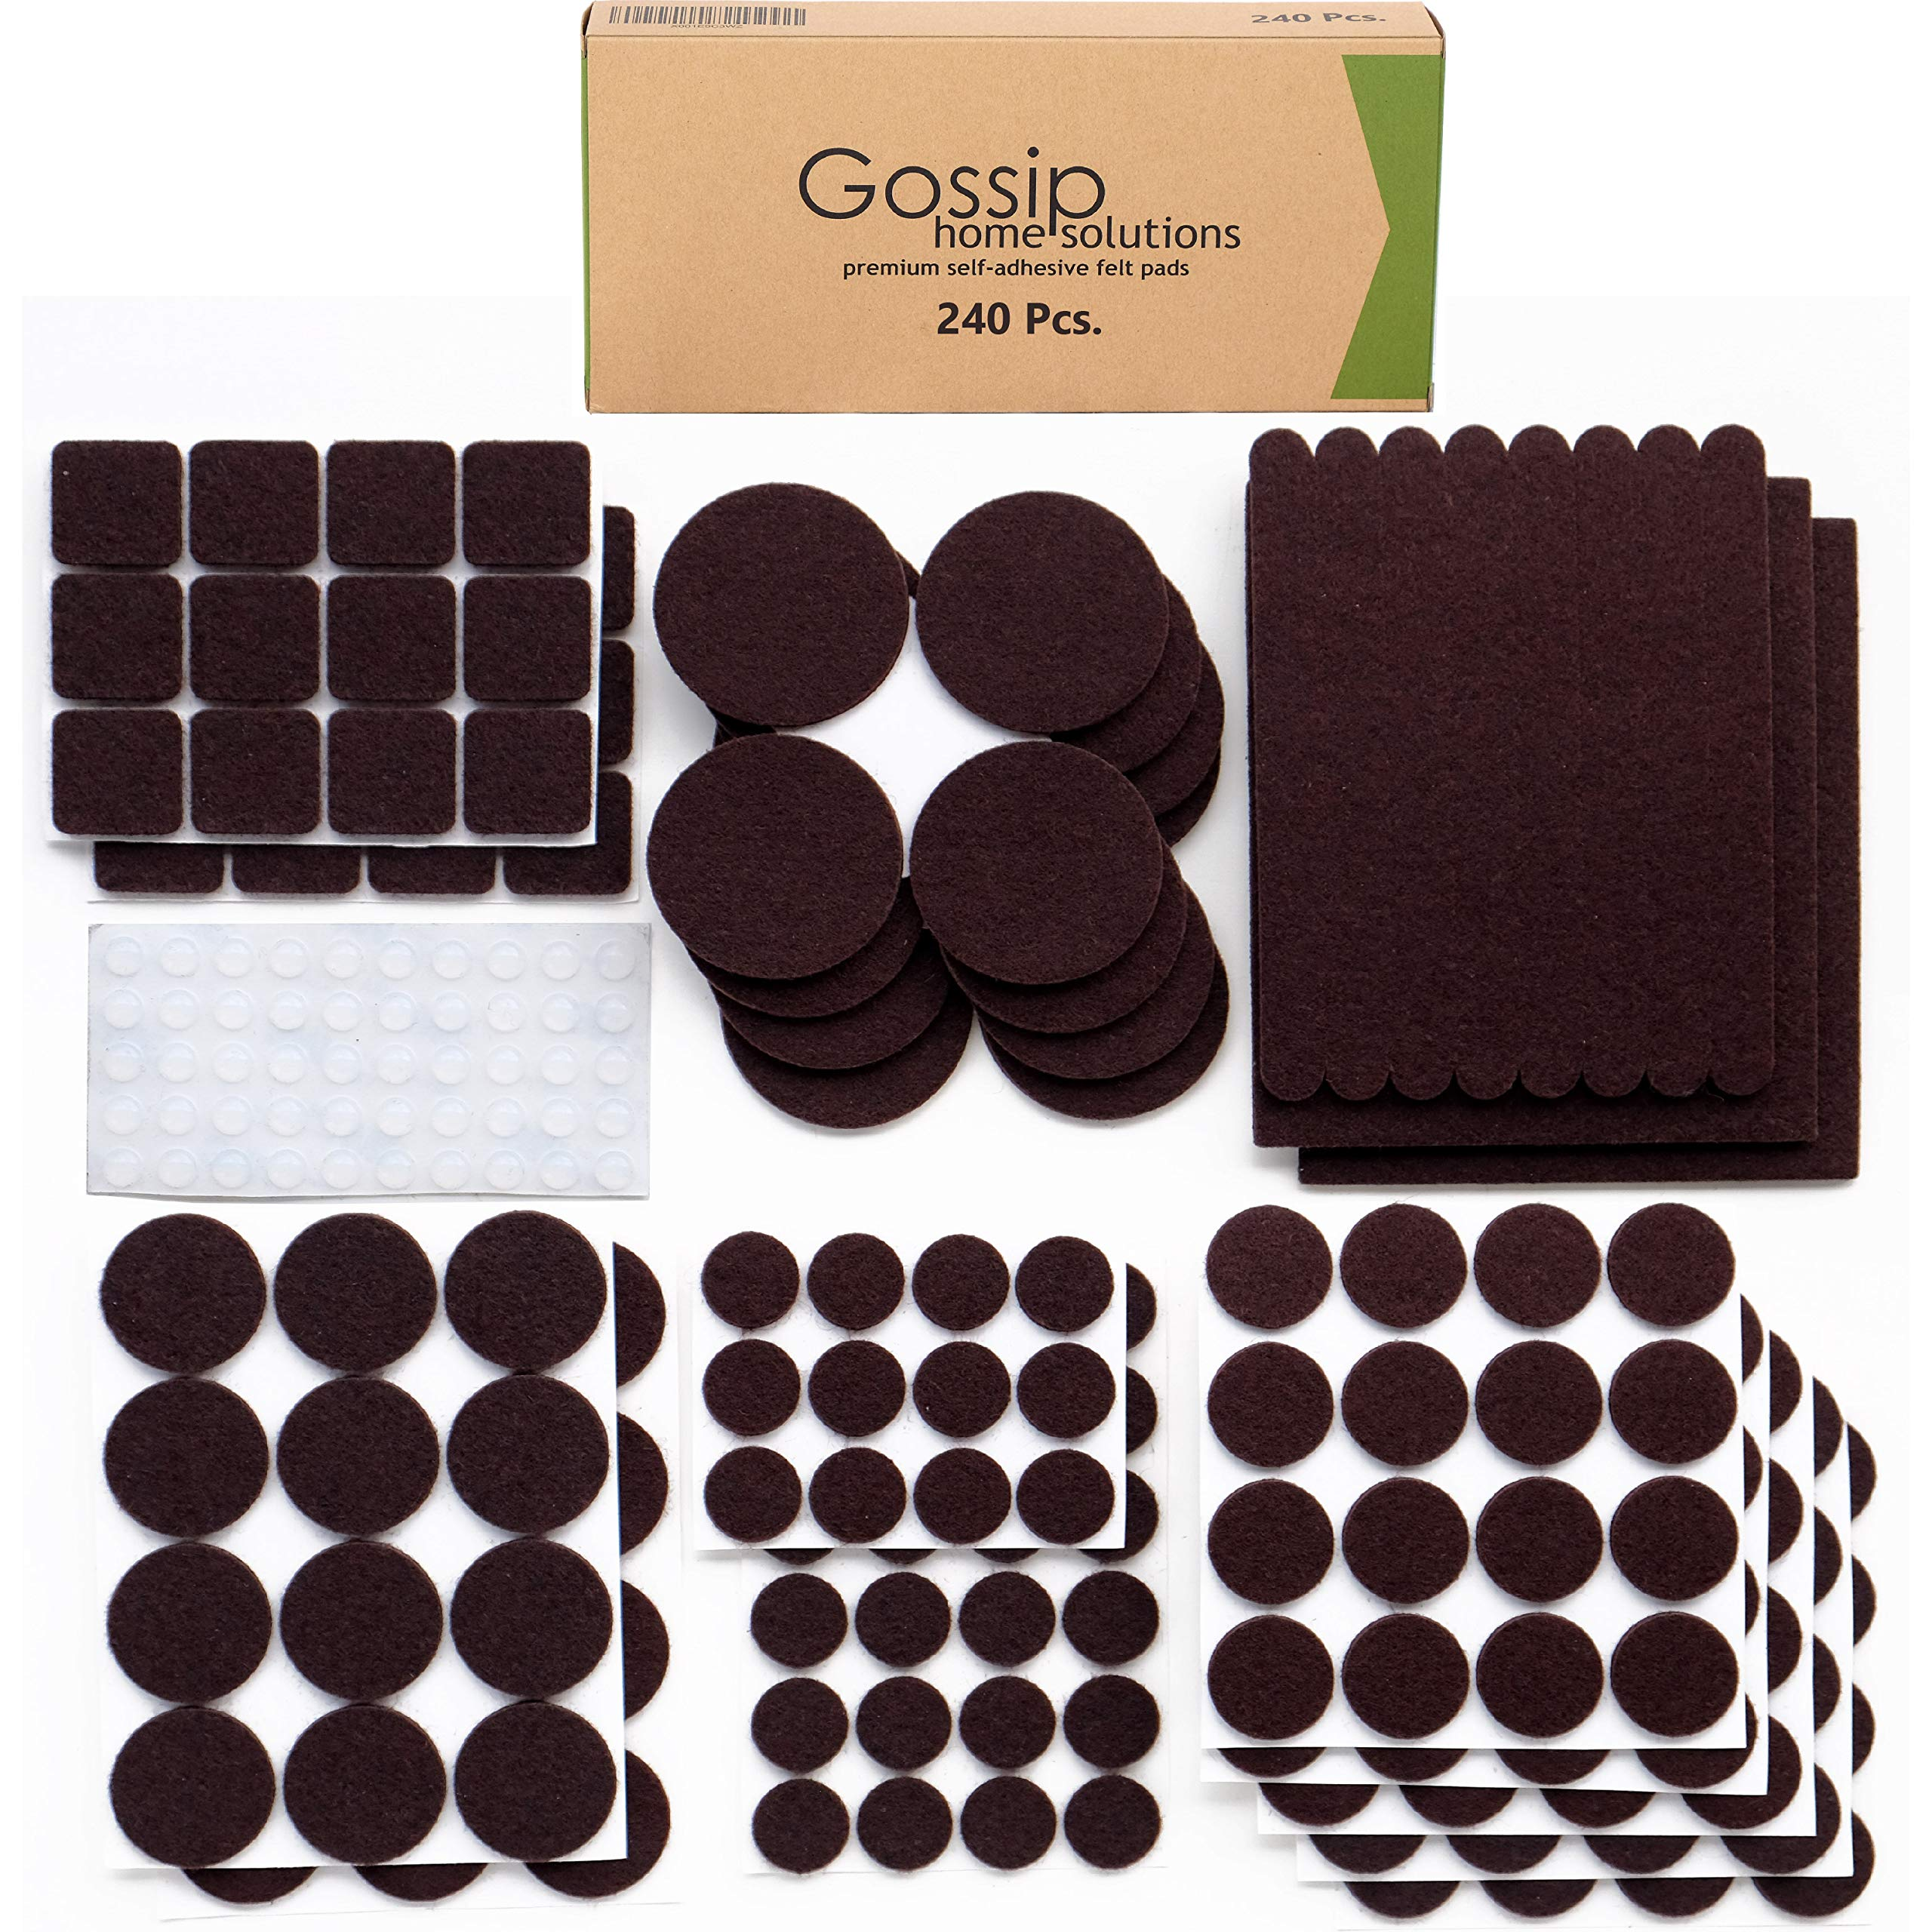 Premium Felt Furniture Pads (Set of 240 Pcs) Large Pack Brown - Heavy Duty Adhesive Felt Pads for Furniture Legs - Hardwood Floor Protectors - Assorted Sizes with Noise-Dampening Clear Rubber Bumpers